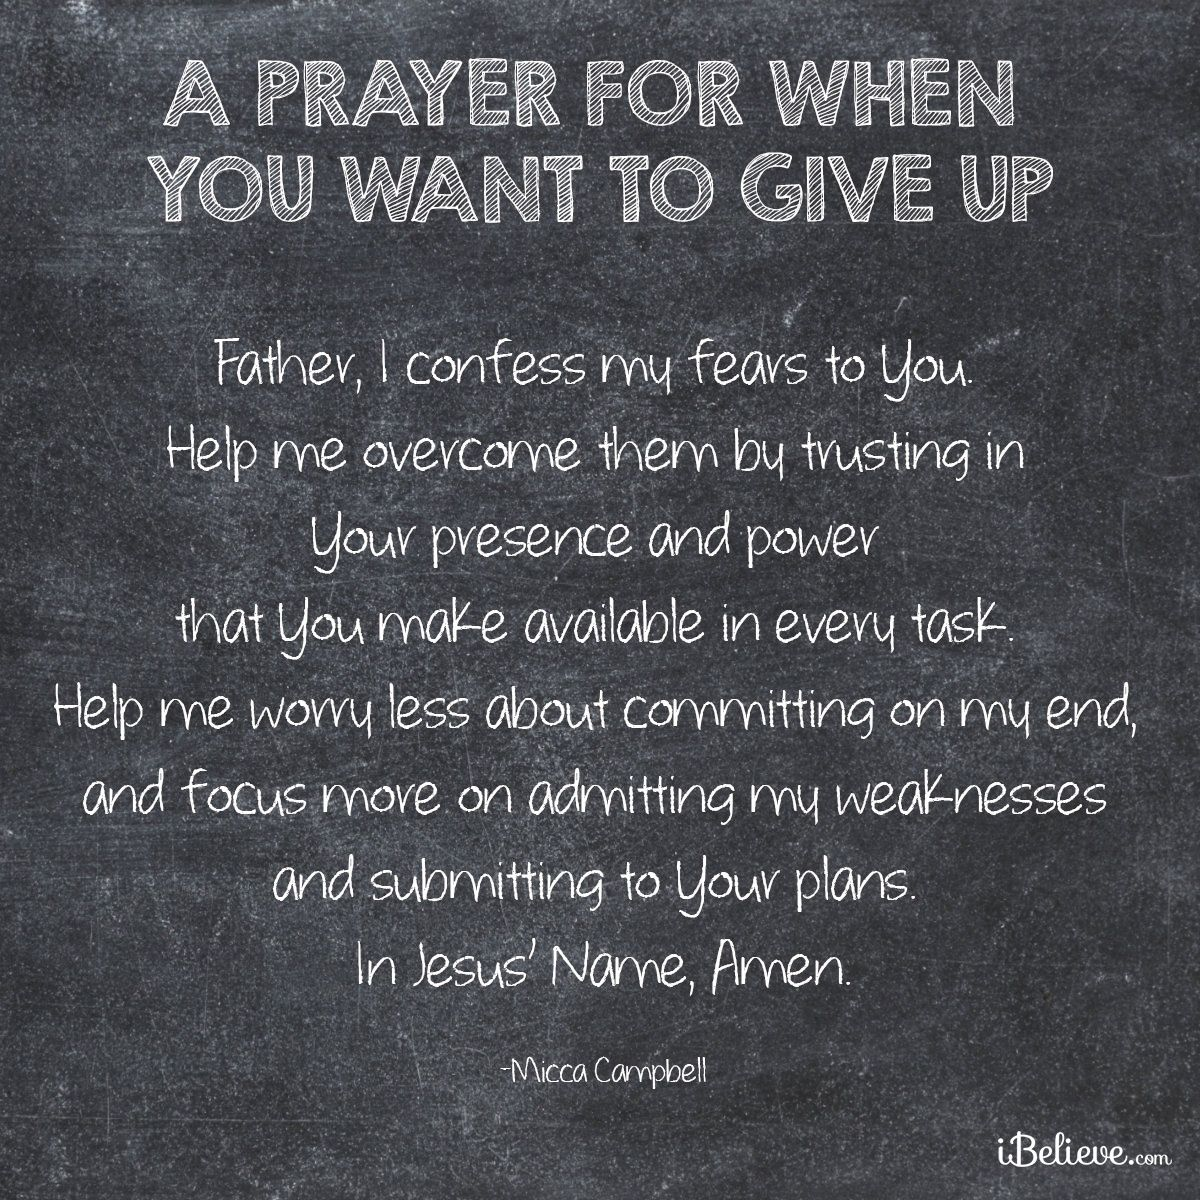 Bible Am Going To Deliver You: A Prayer For When You Want To Give Up